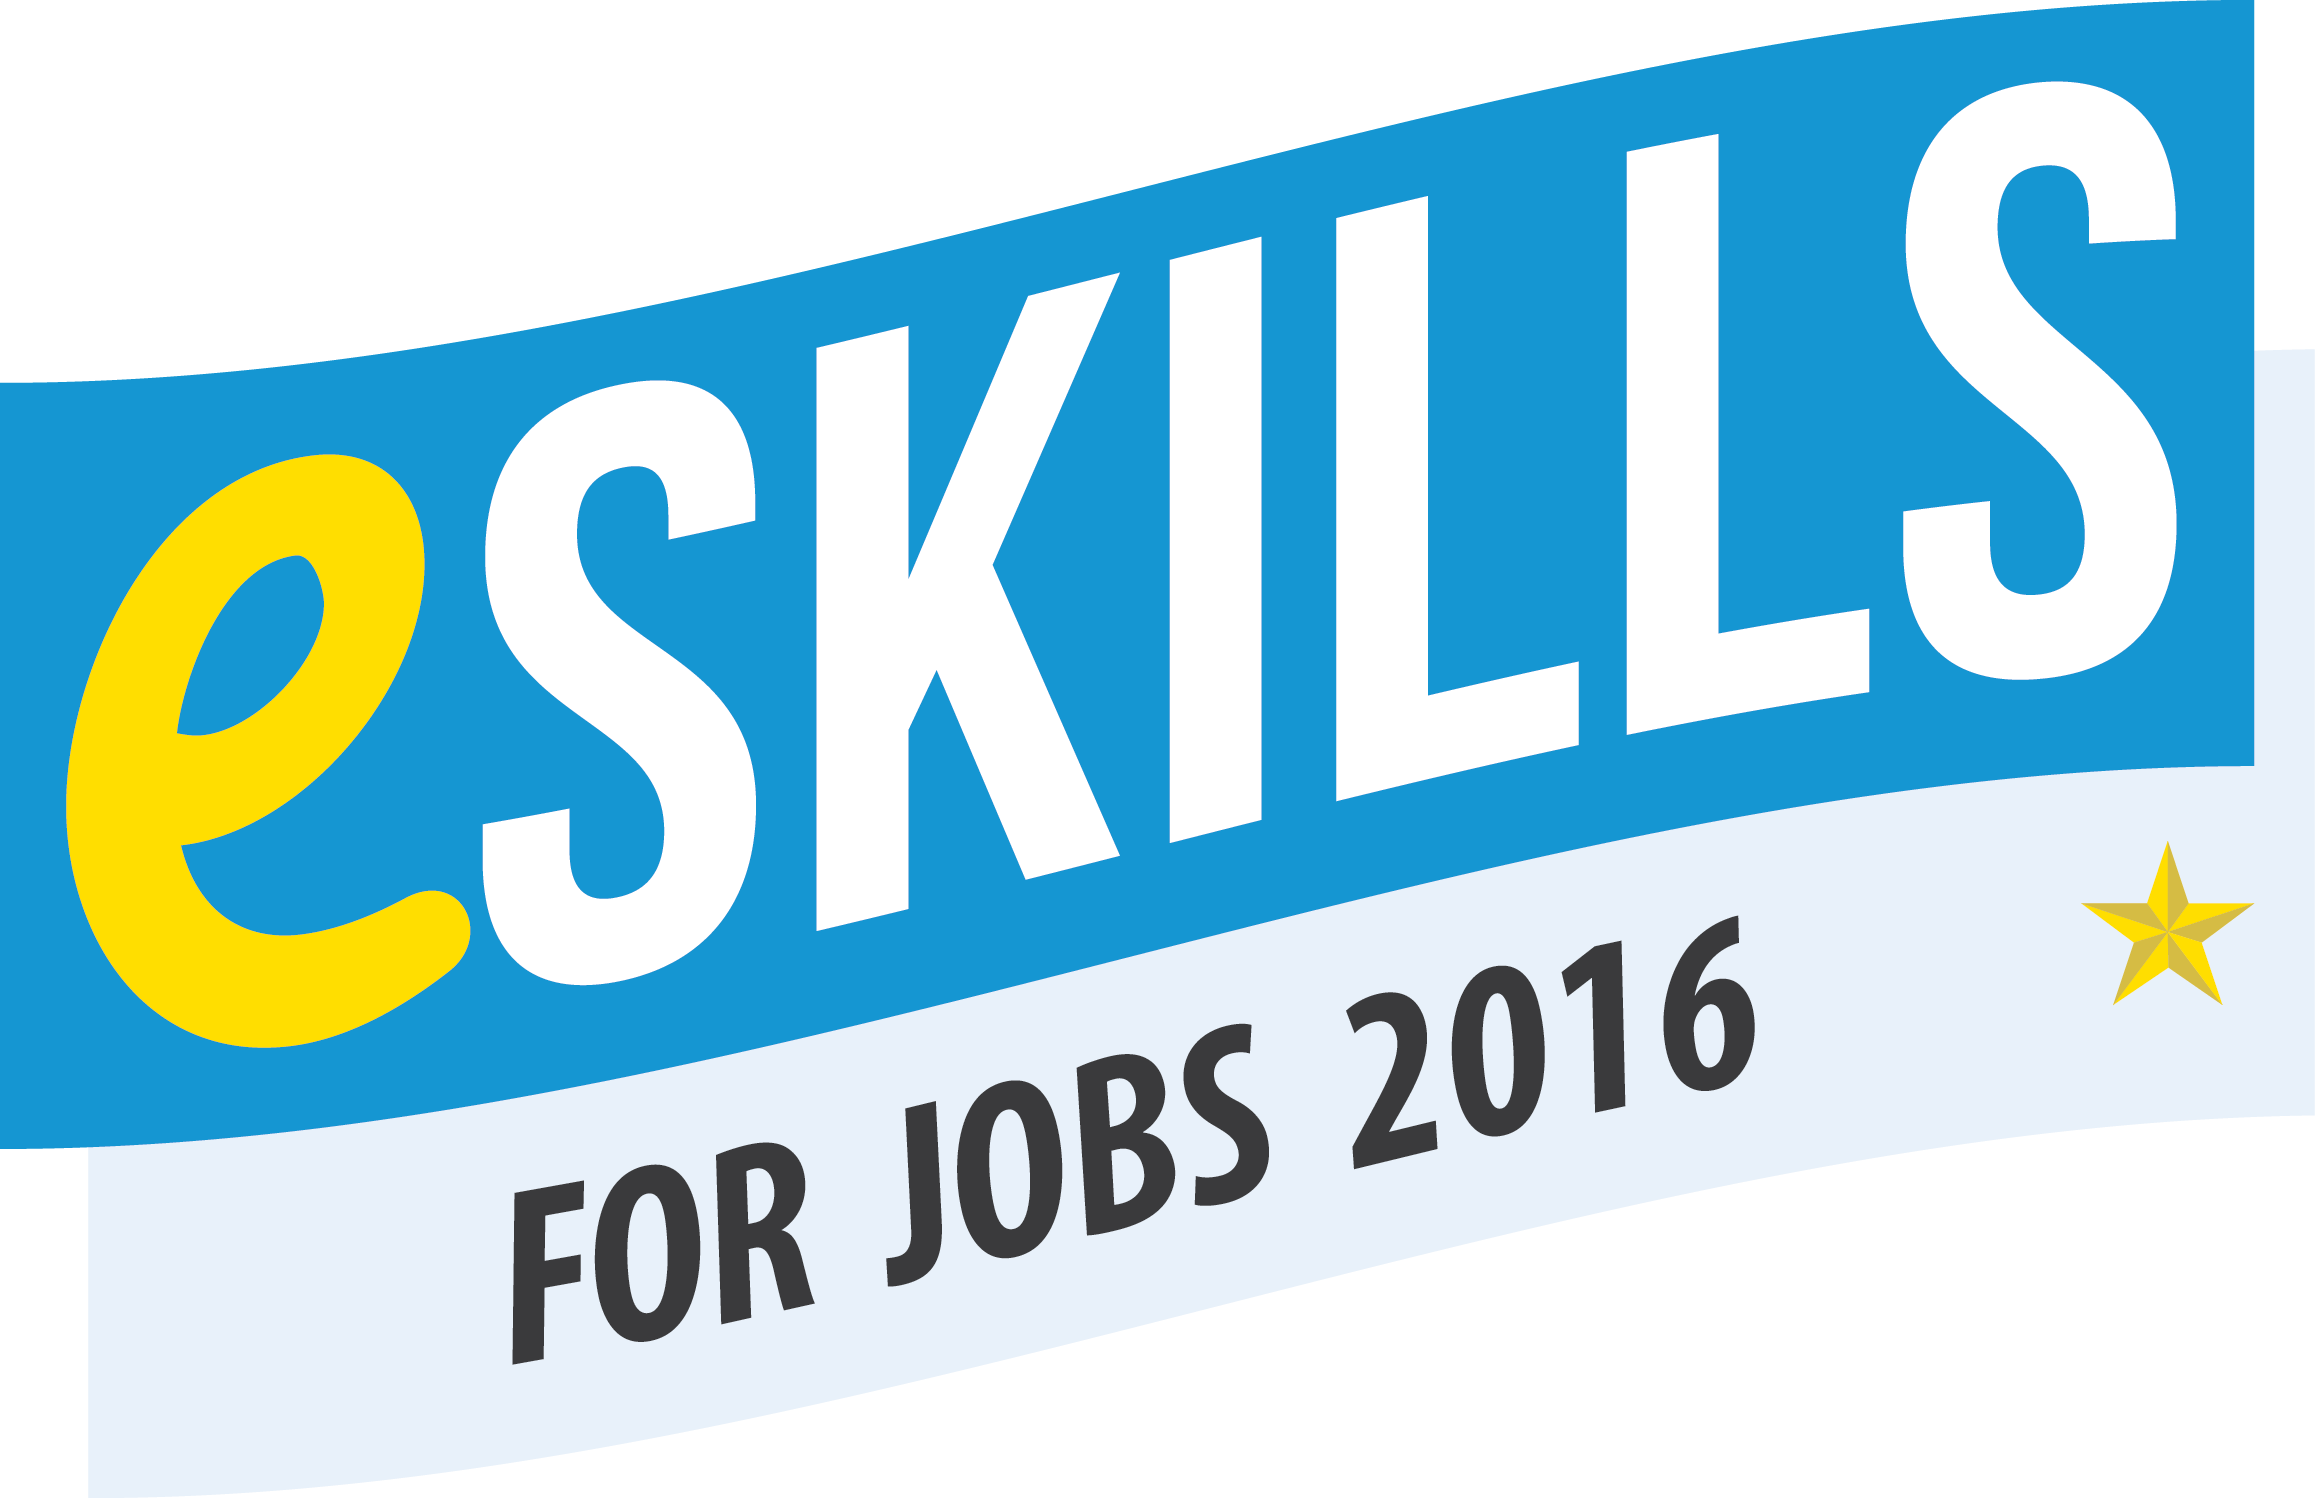 eSkills for Jobs campaign logo